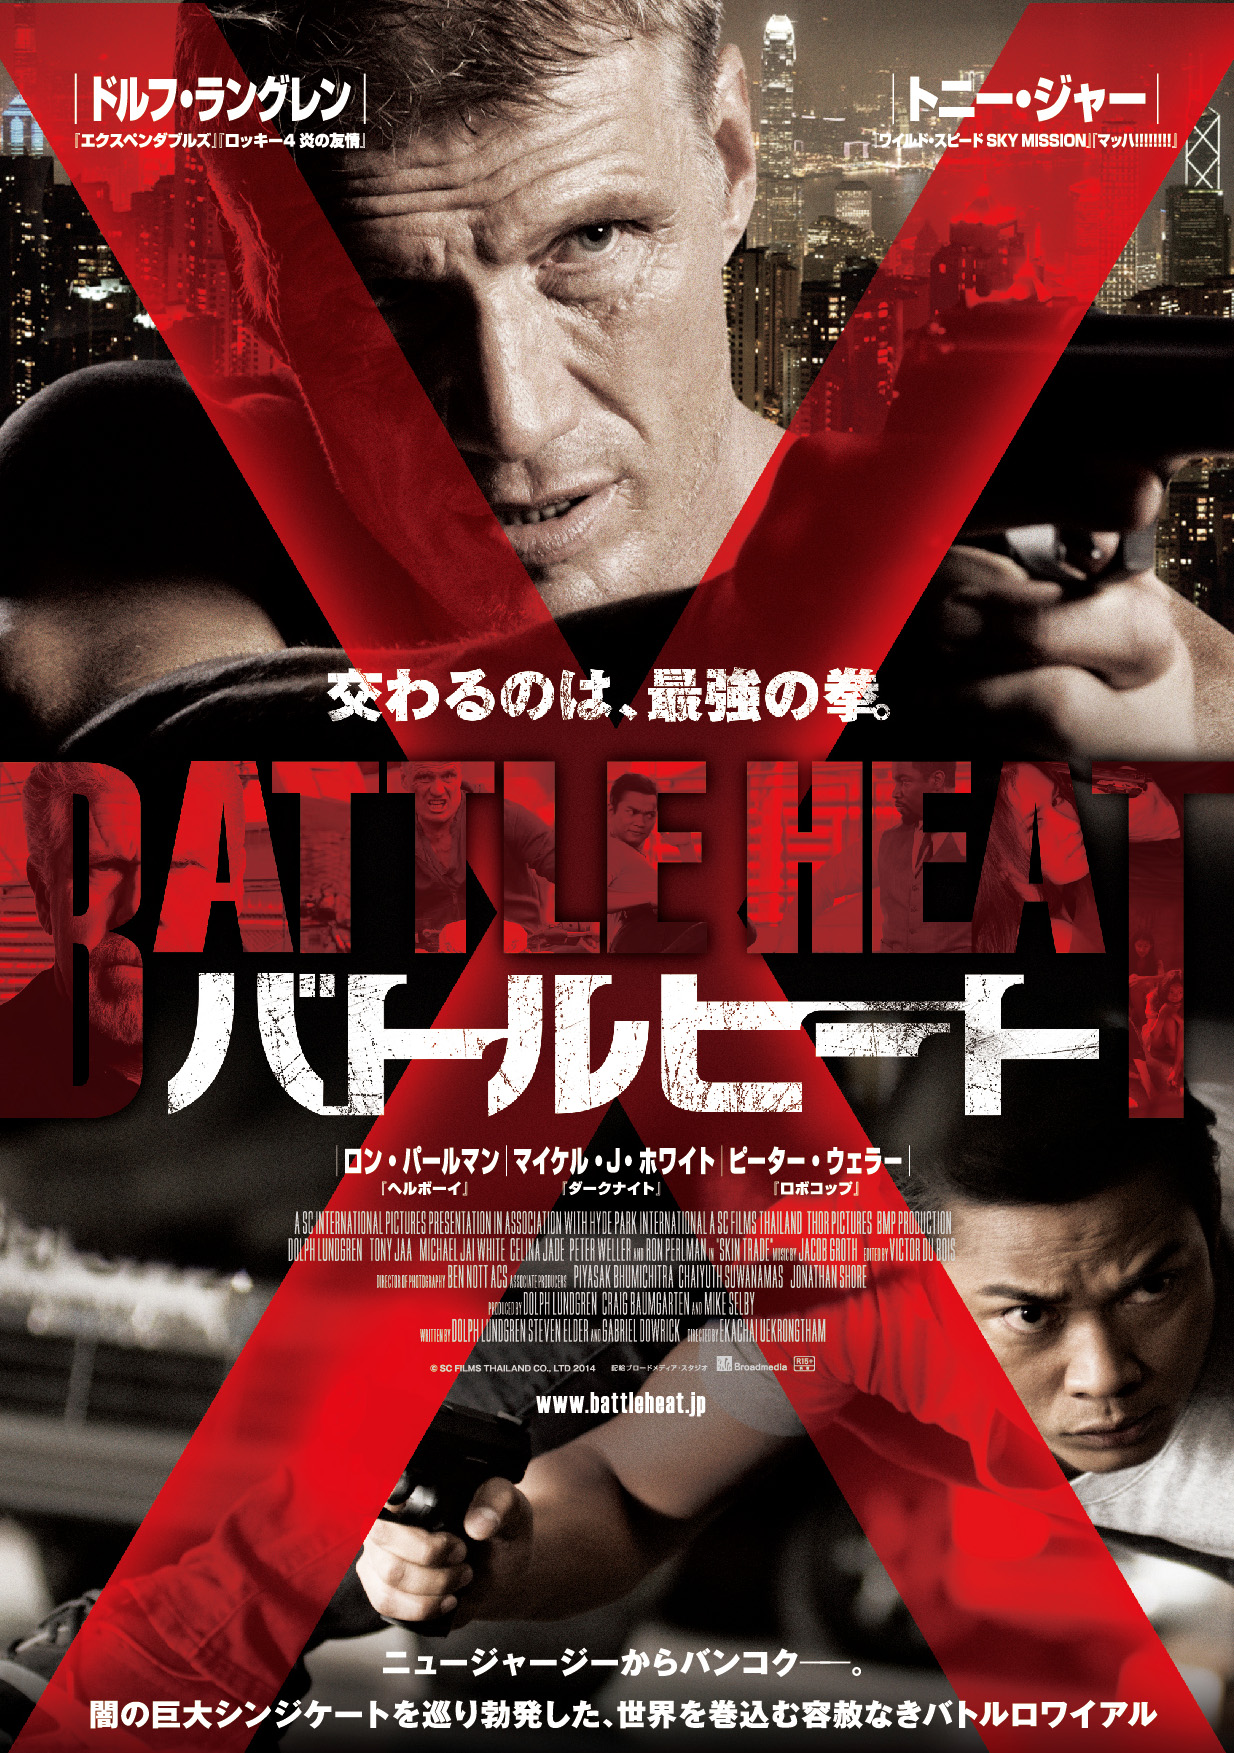 movie battleheat